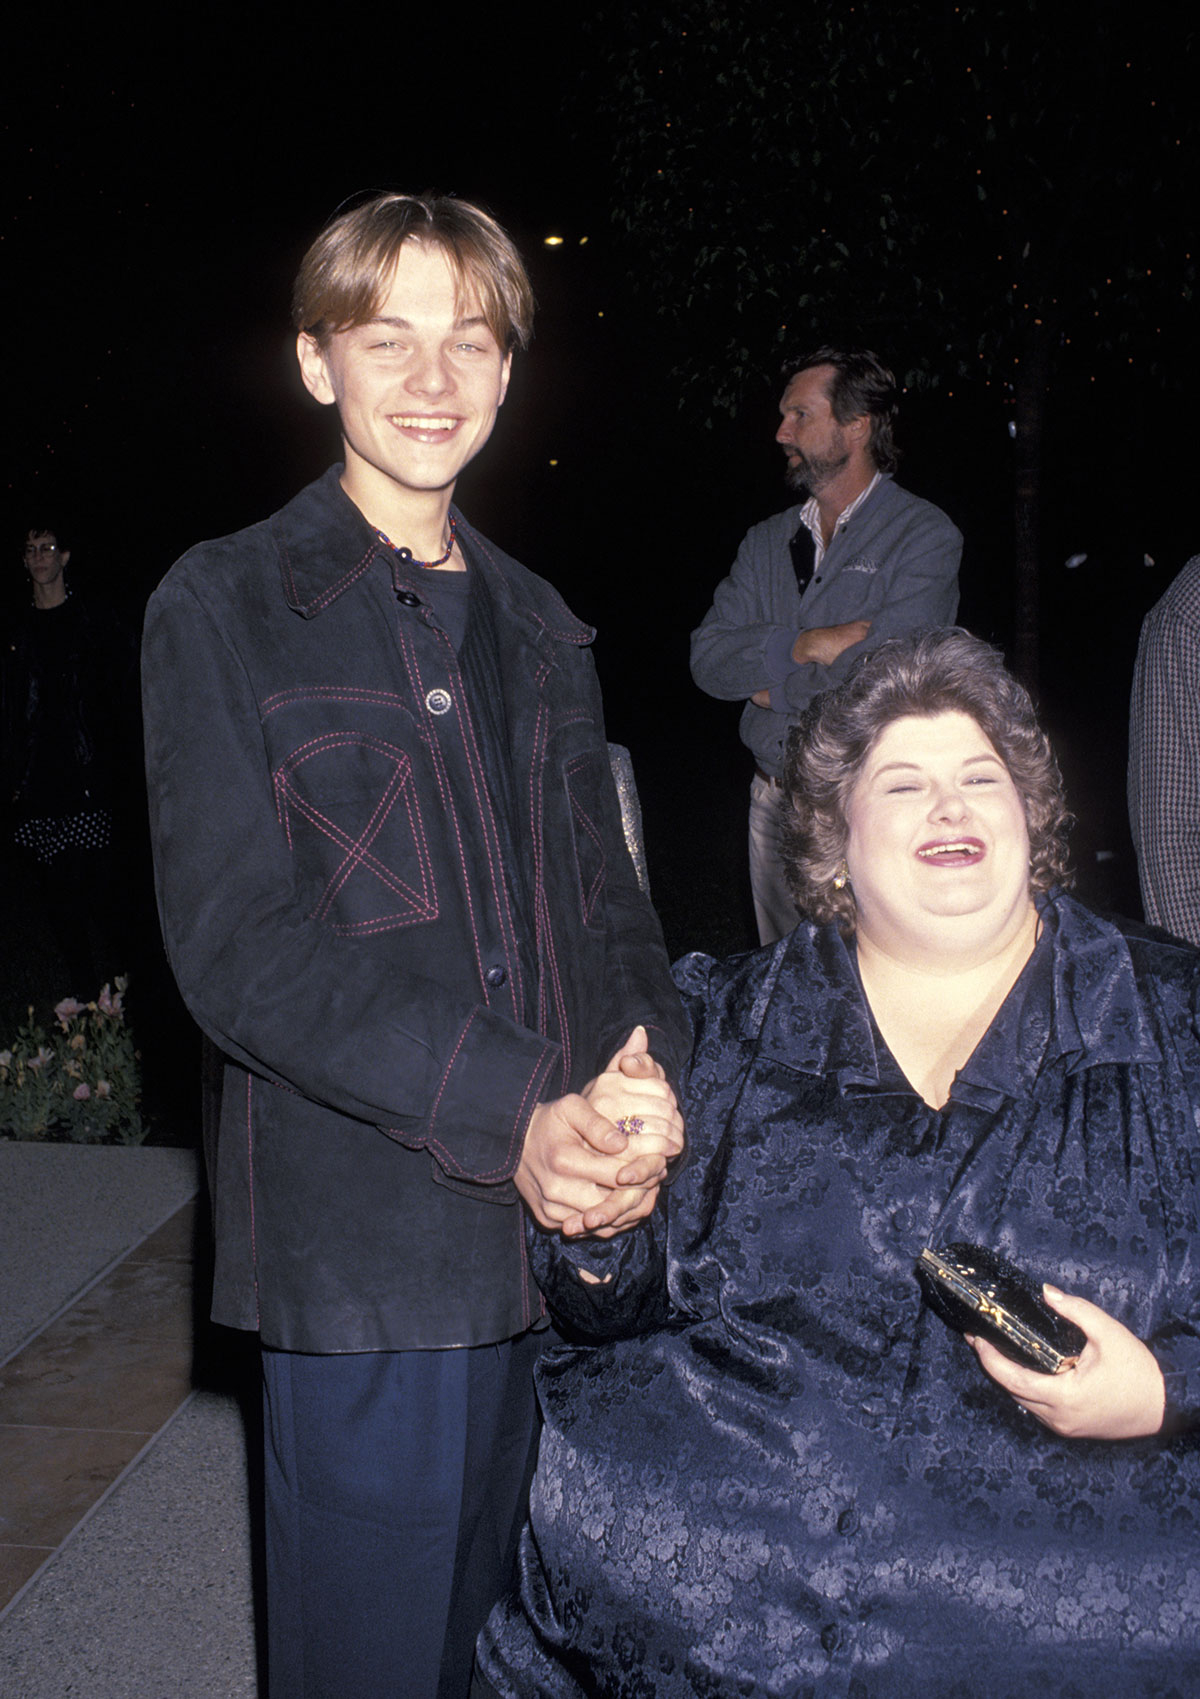 Leonardo DiCaprio and Darlene Cates at the 1993 Premiere of their movie